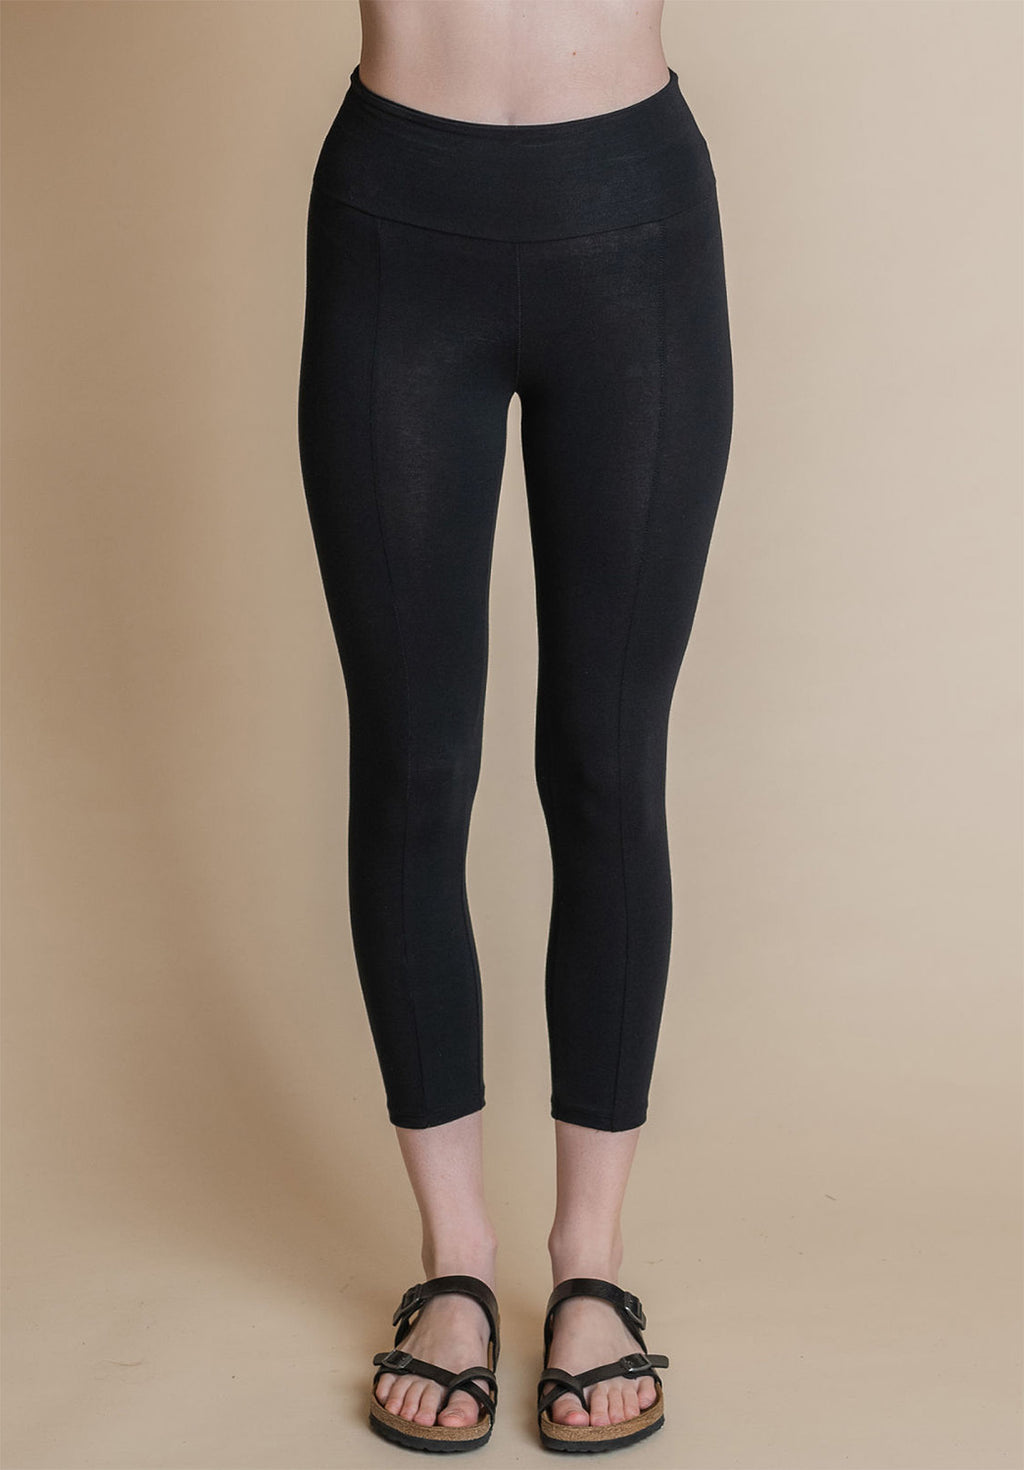 australian fashion online, ethical fashion online, vegan fashion online, vegan clothes brands, slow fashion, cotton leggings australia, cotton pants australia